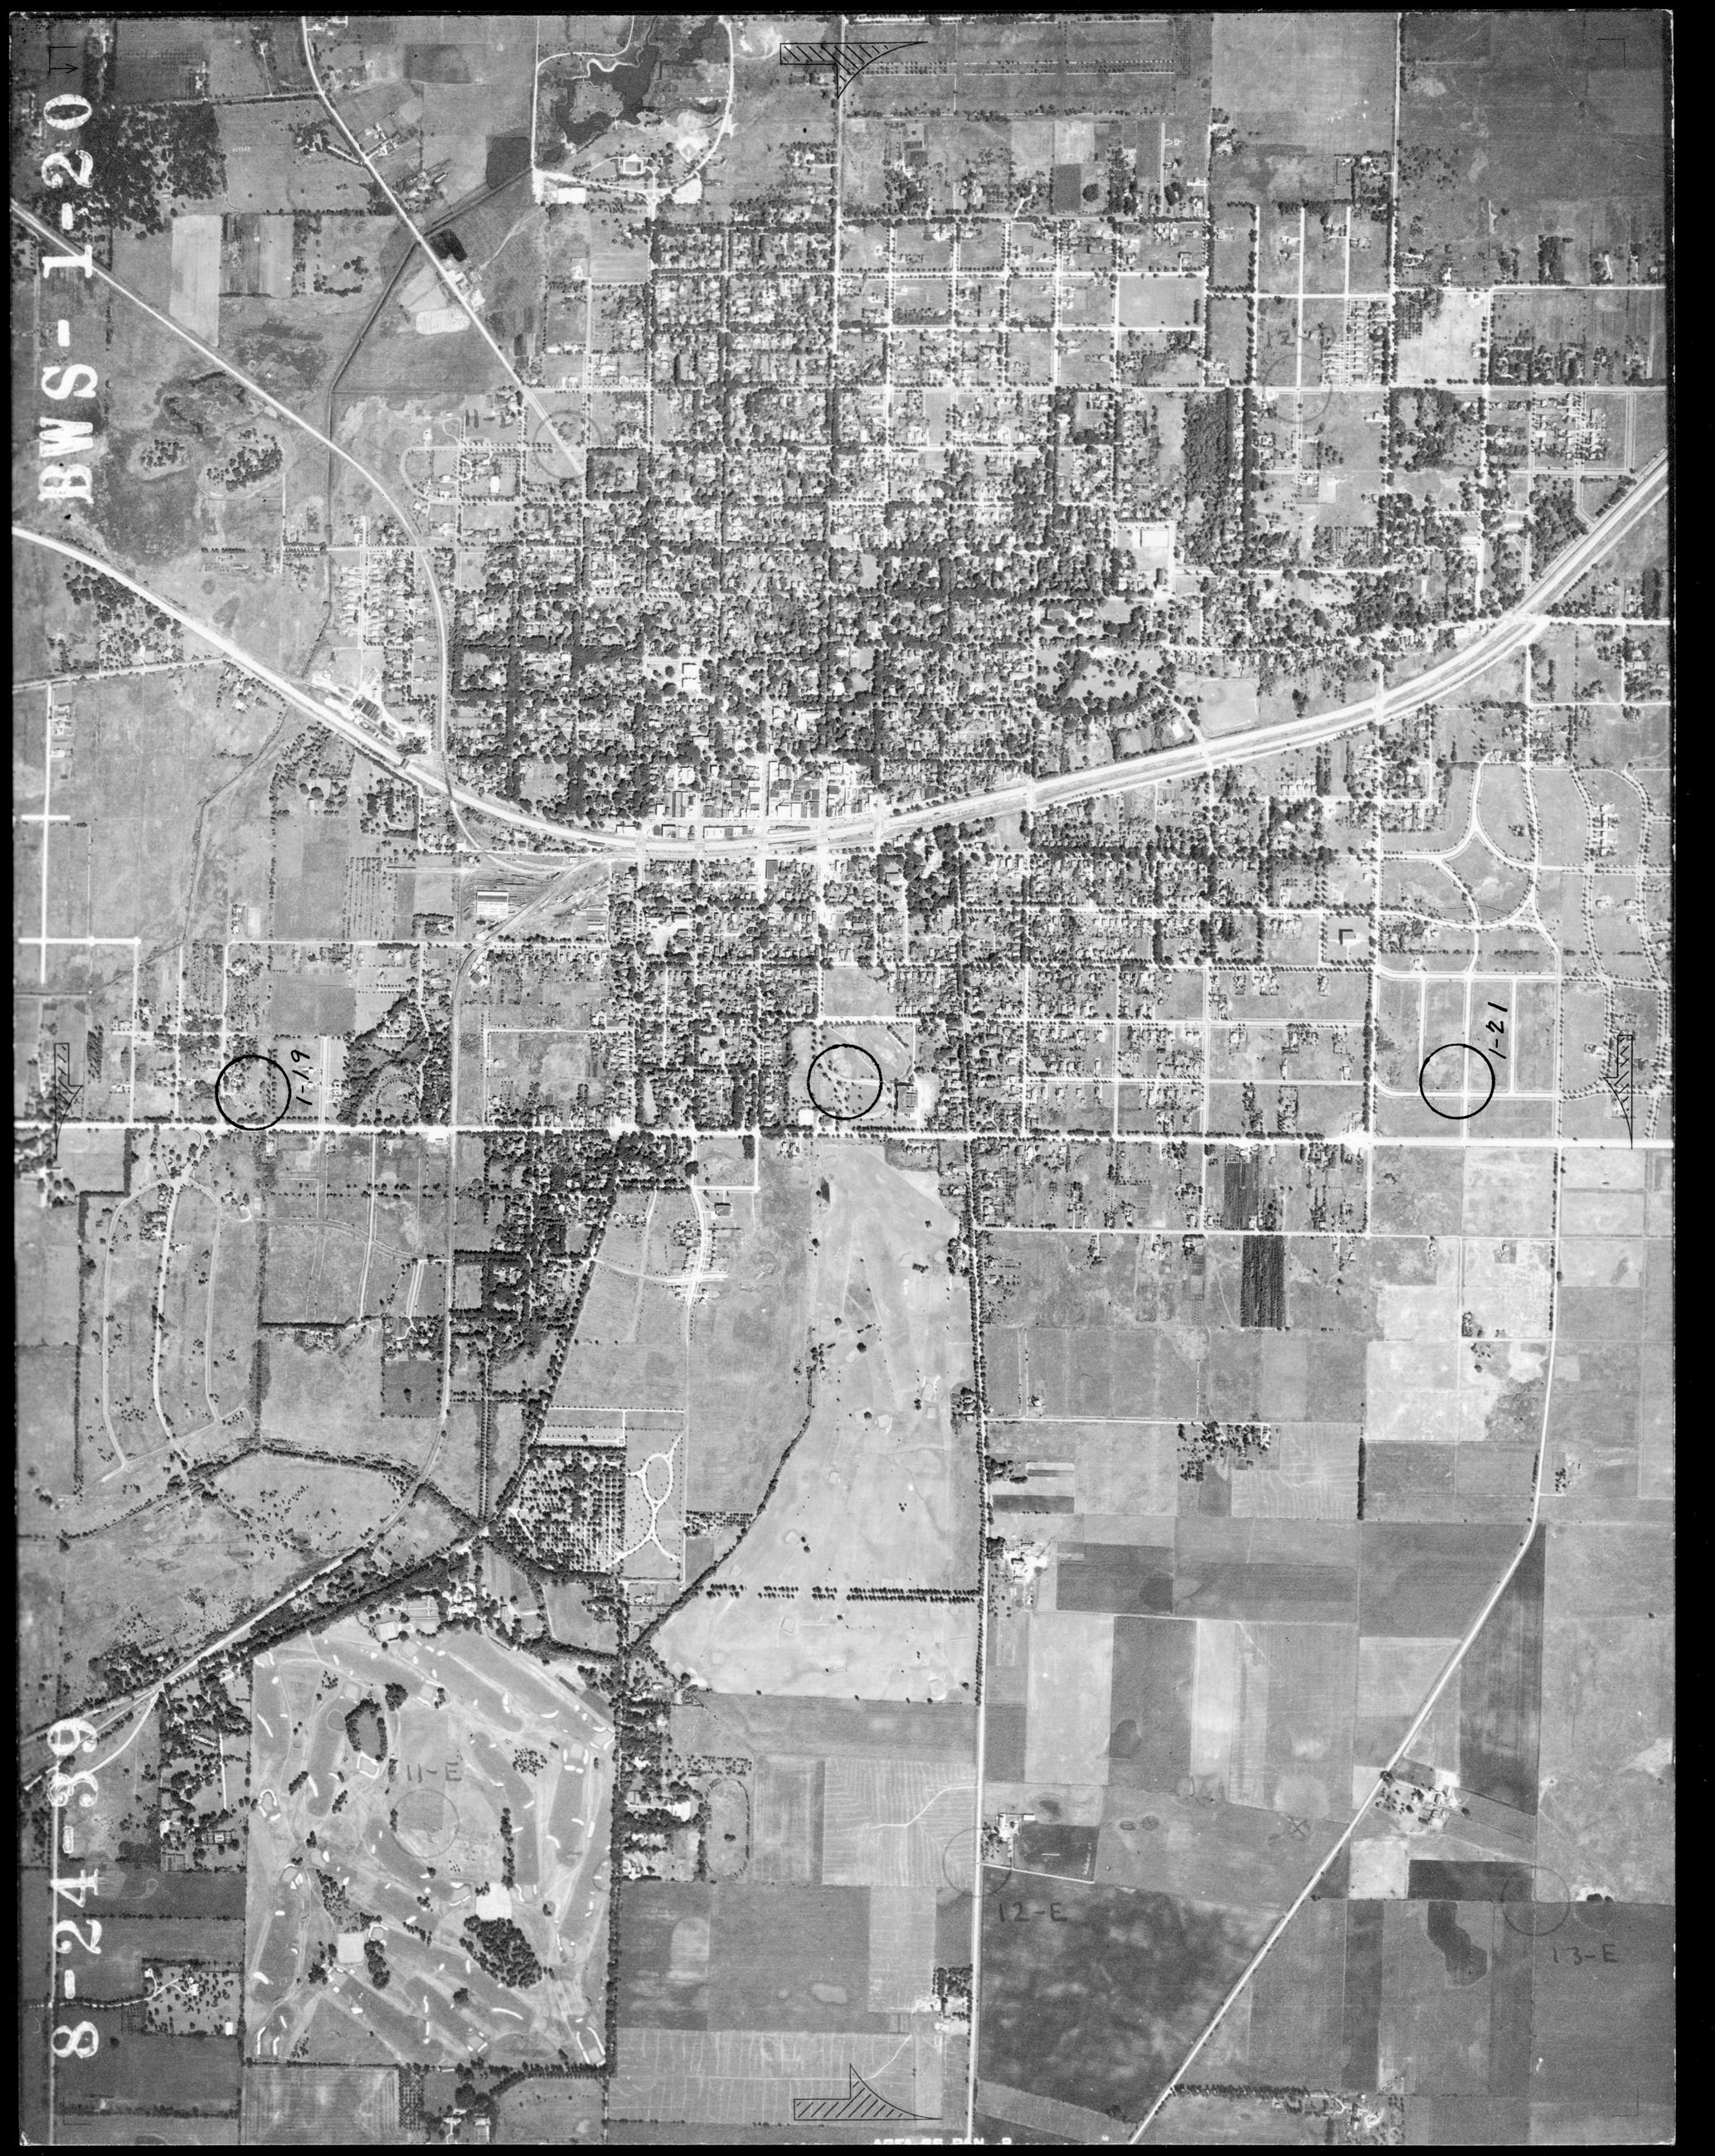 City of Wheaton Aerial View - 1939